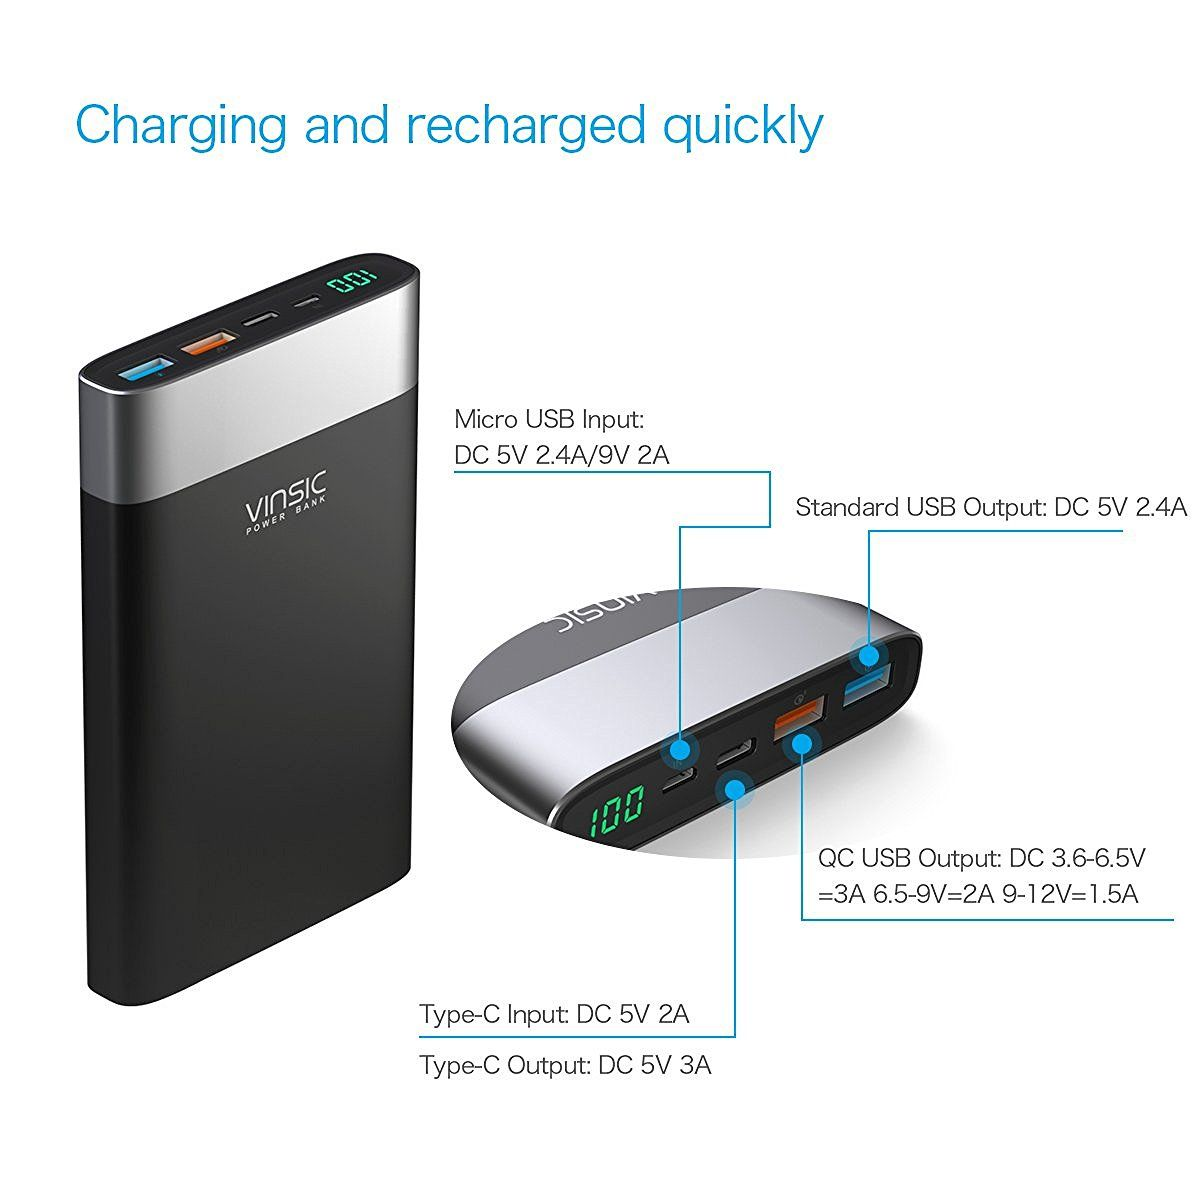 vinsic powerbank 20000 mah